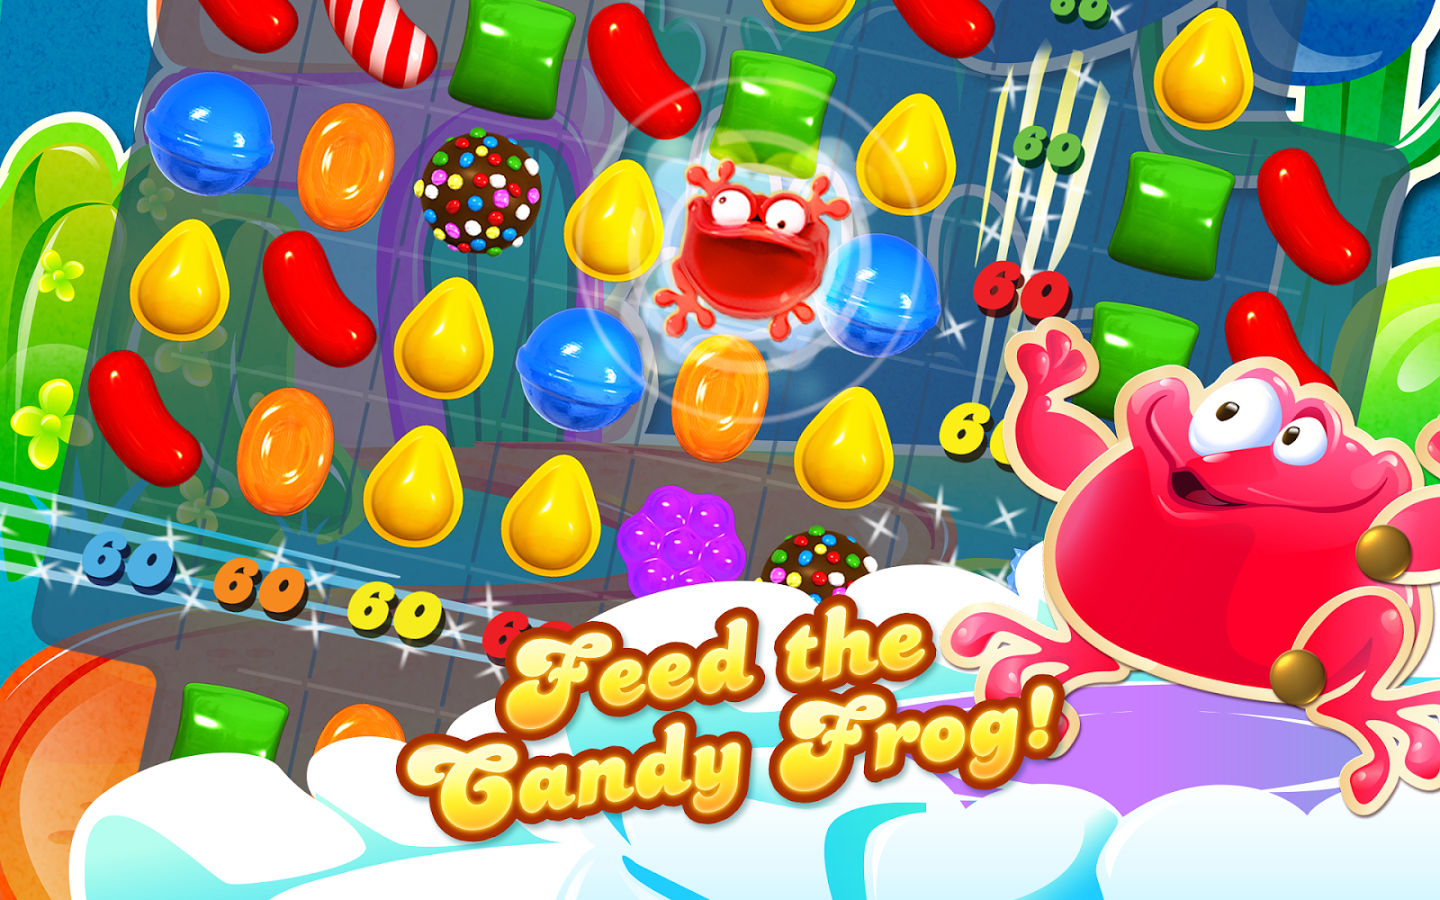 Candy Crush Saga APK v1.51.2 Mega MOD 2015 (Boosters & Unlimited Lives)